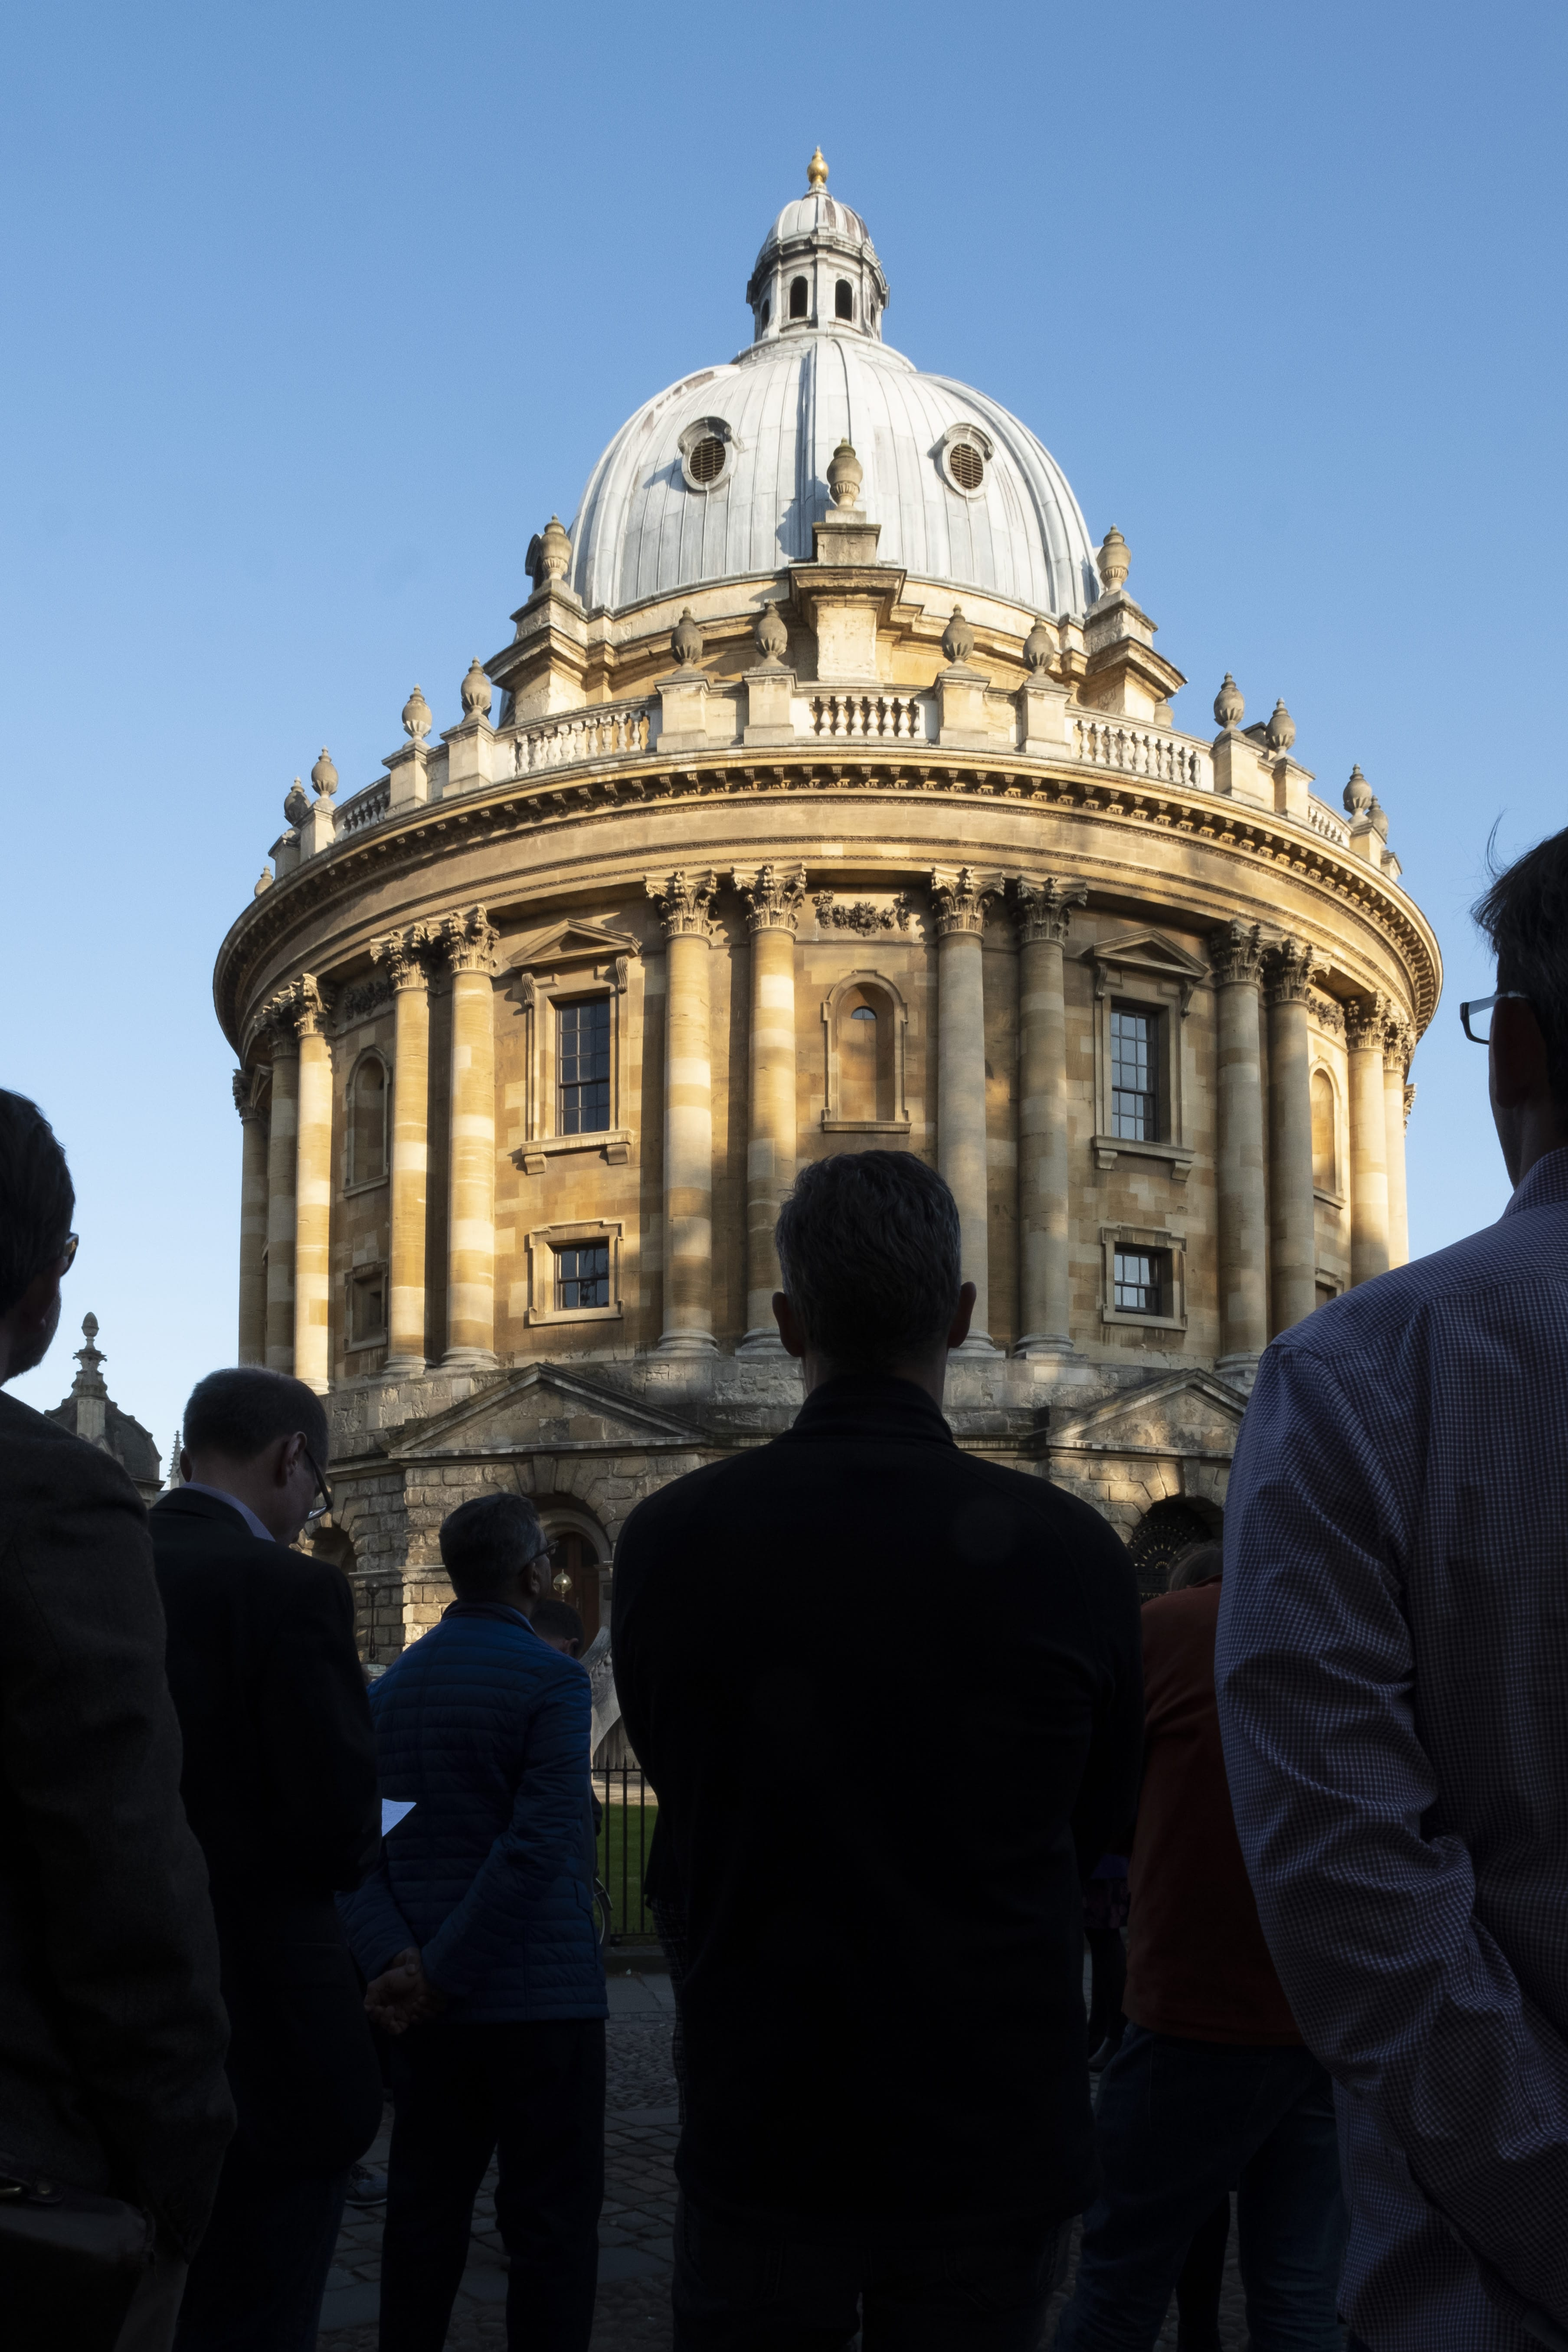 Studying at Oxford